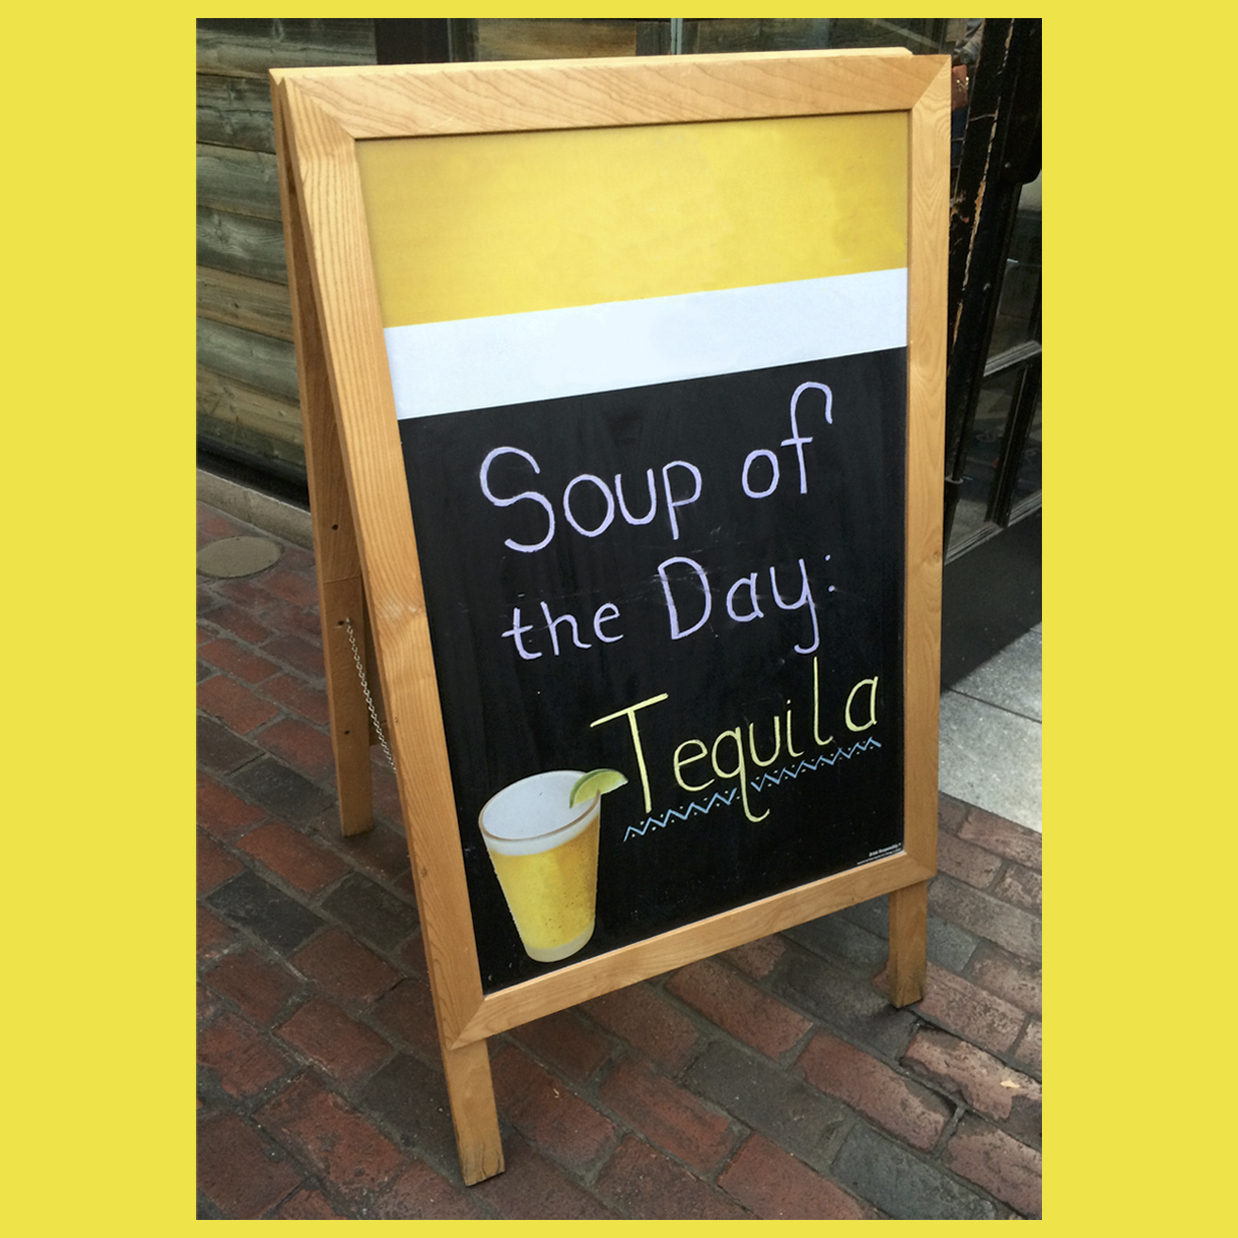 Soup of the Day: Tequila – coaster set